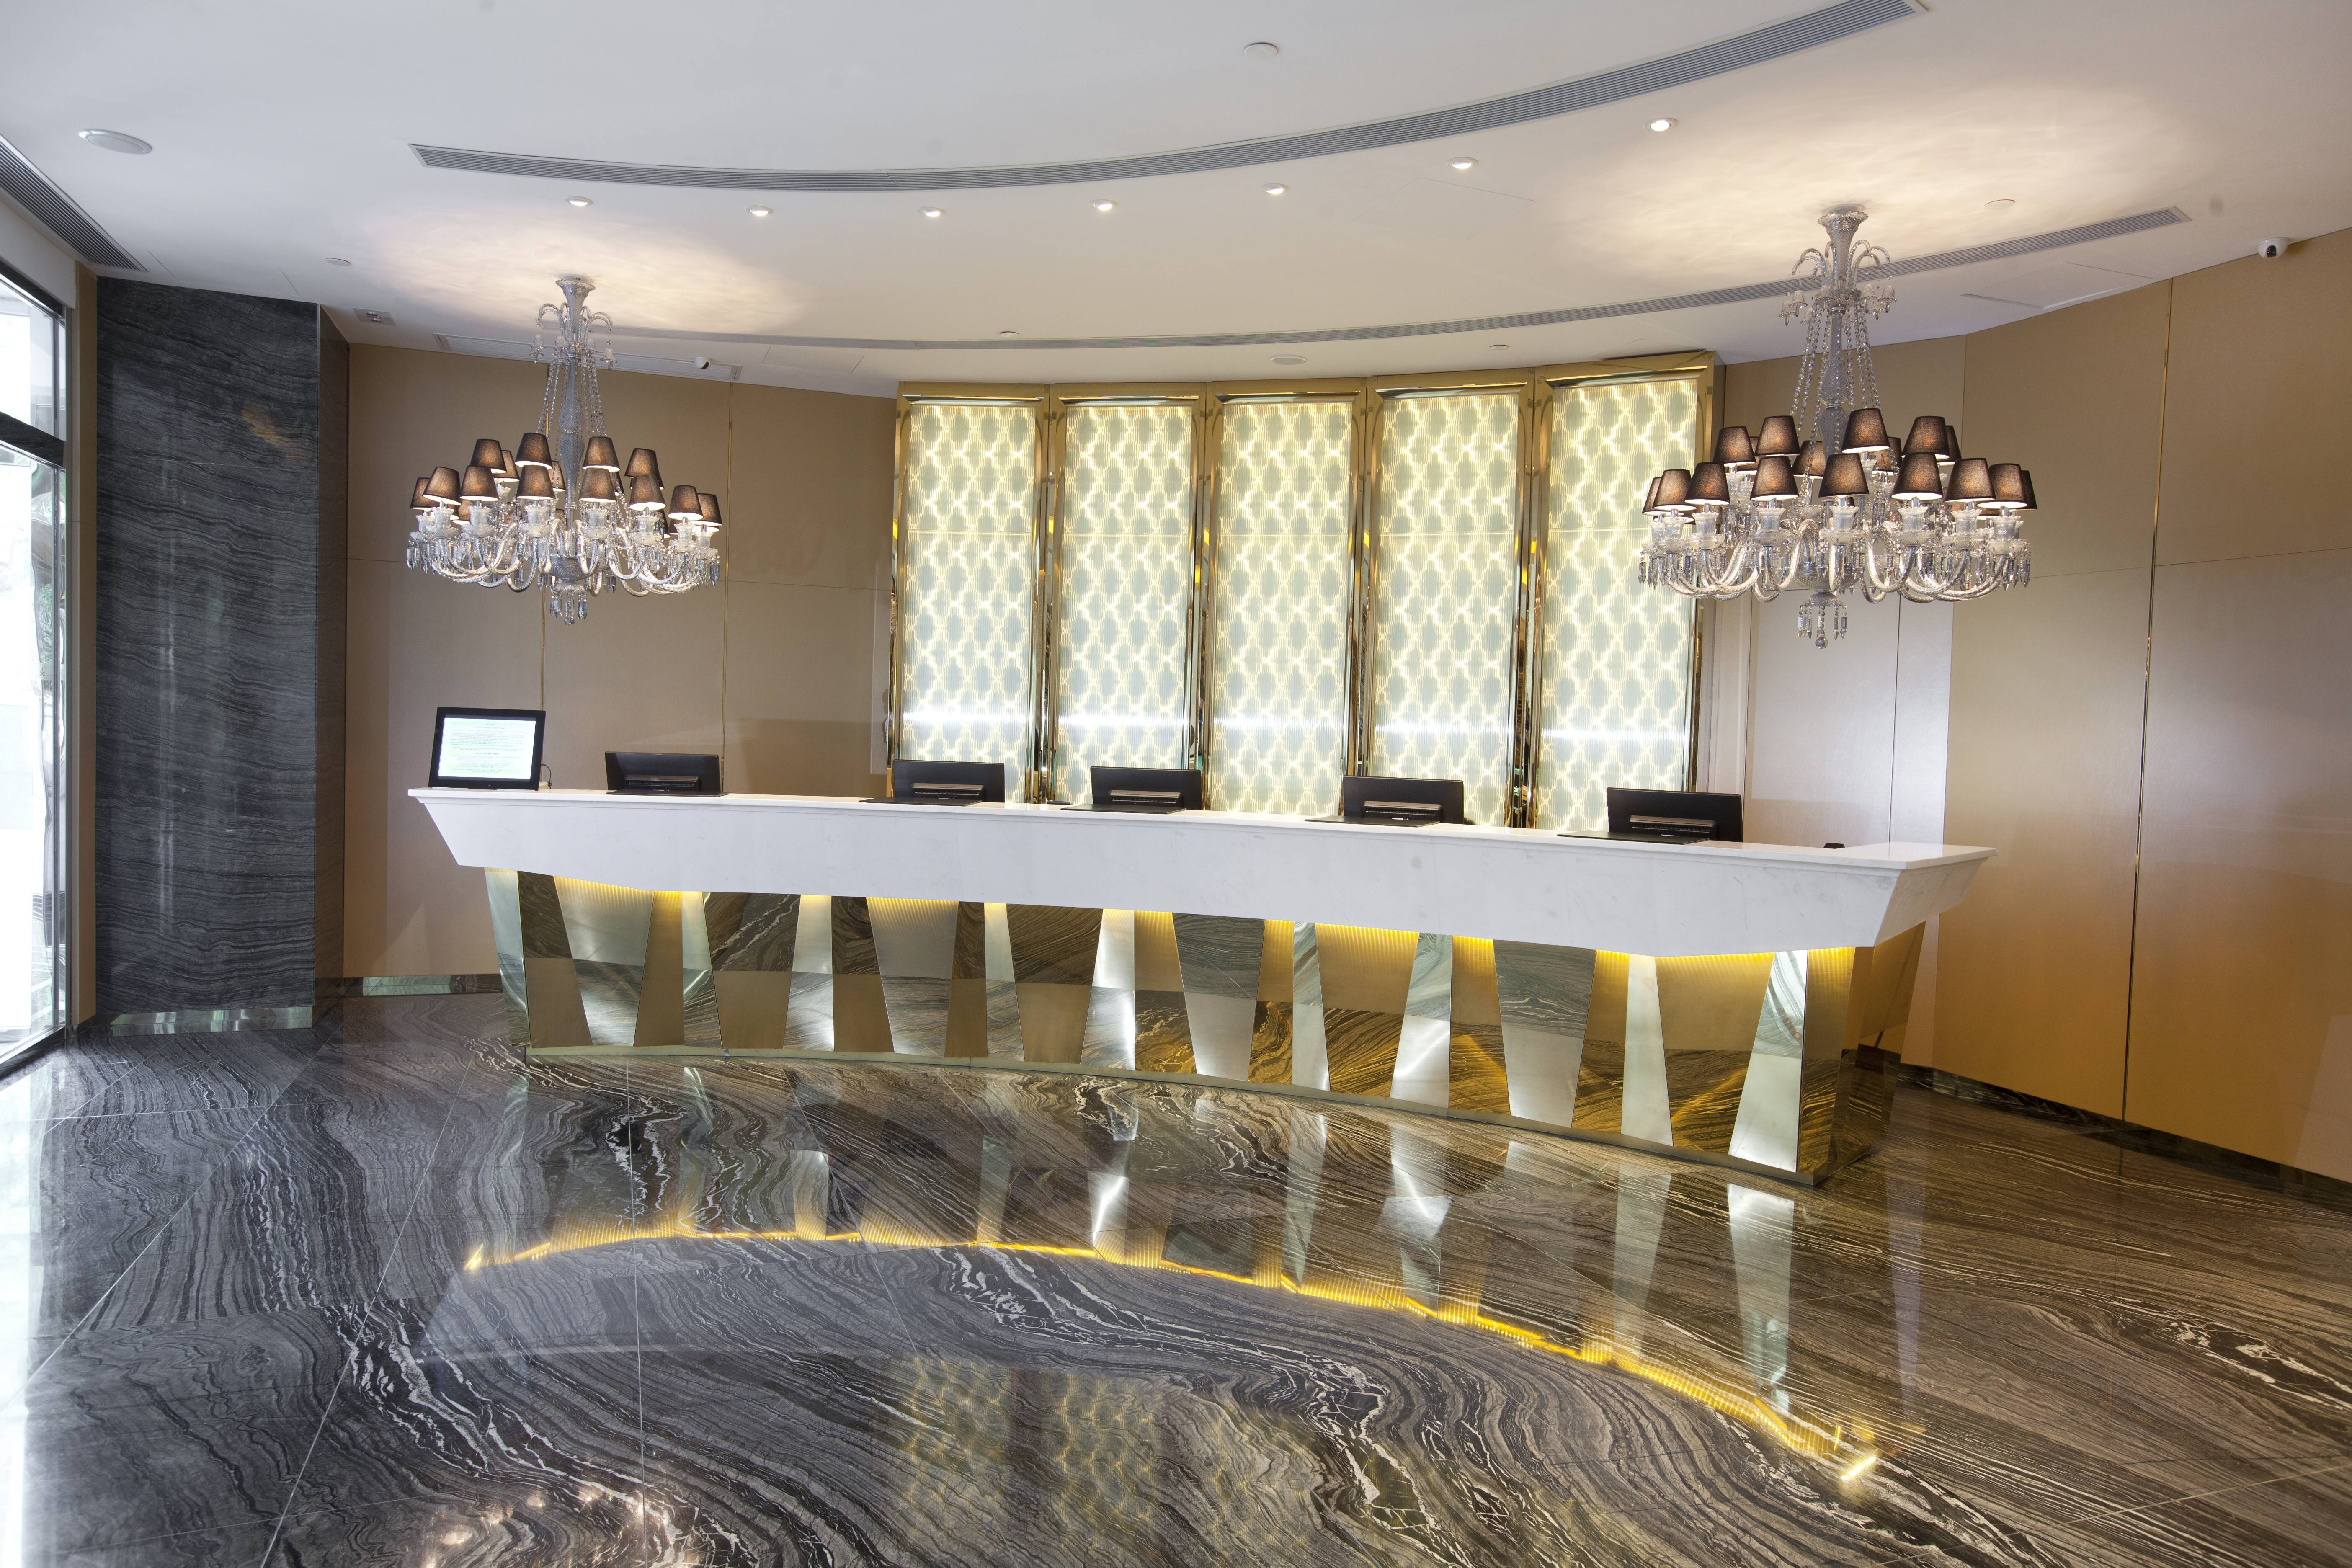 Lobby  Our spacious and welcoming lobby is stylishly designed and furnished